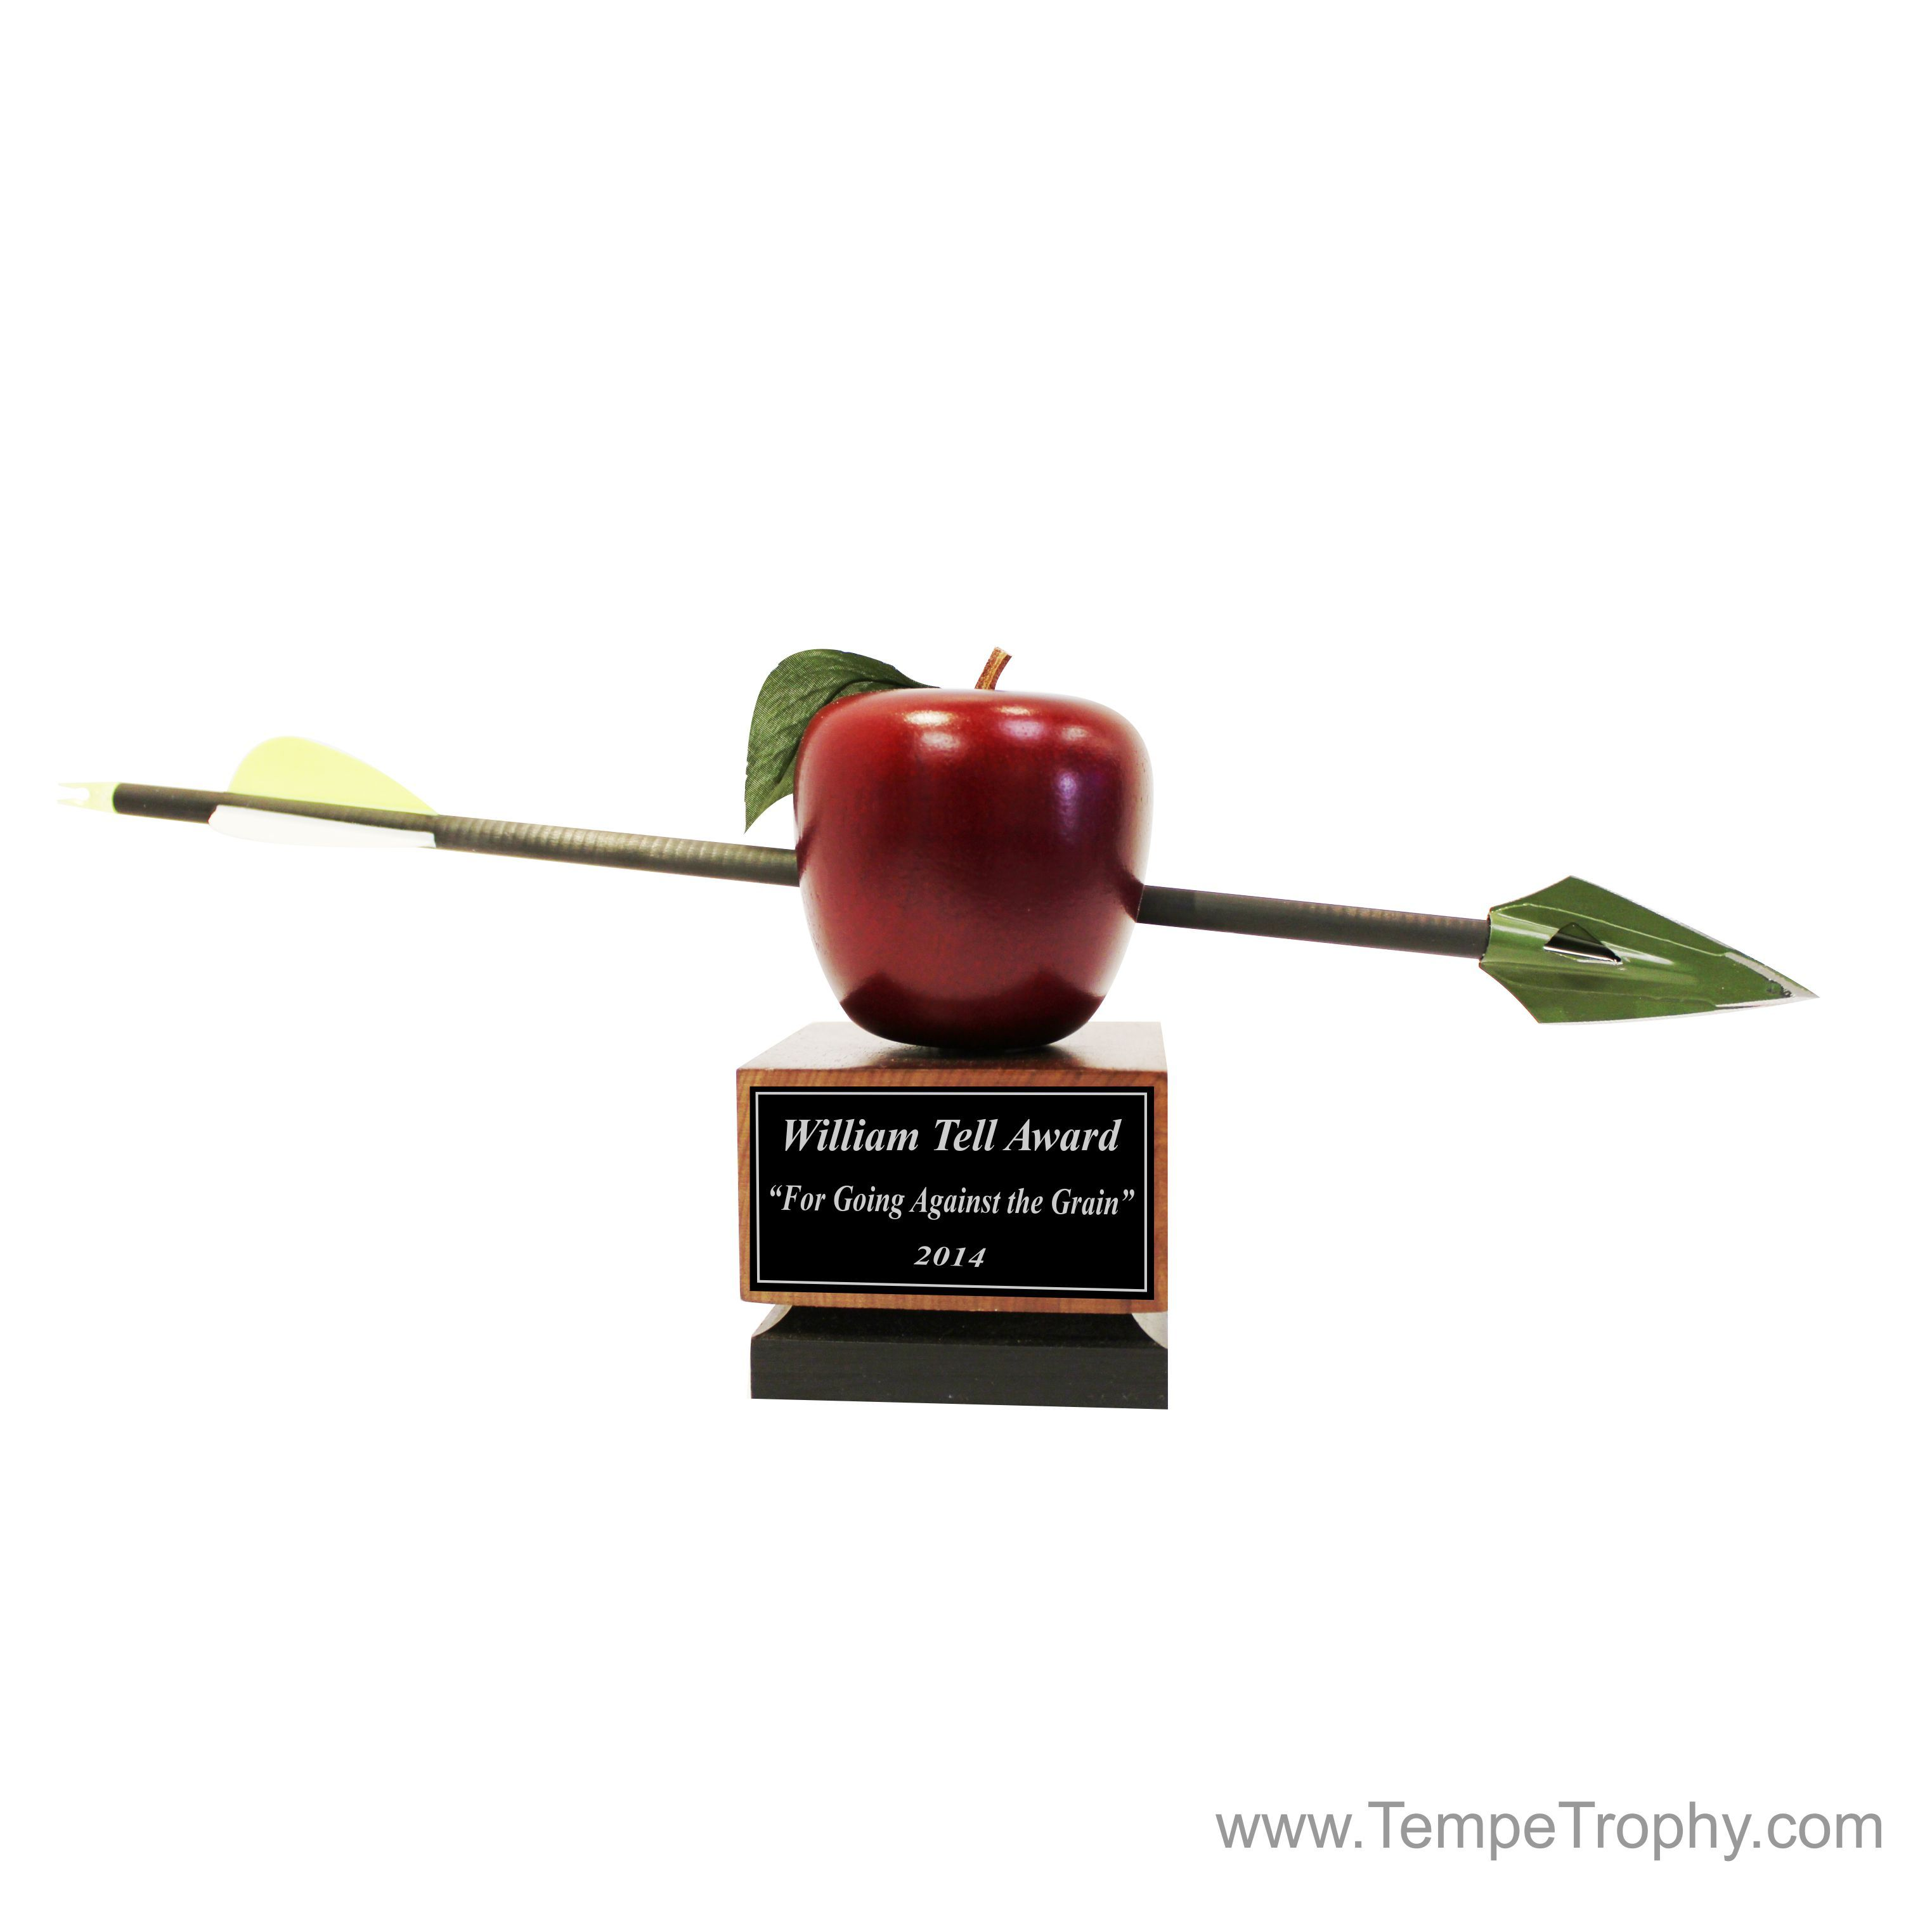 William Tell, is famous for shooting an apple off his son